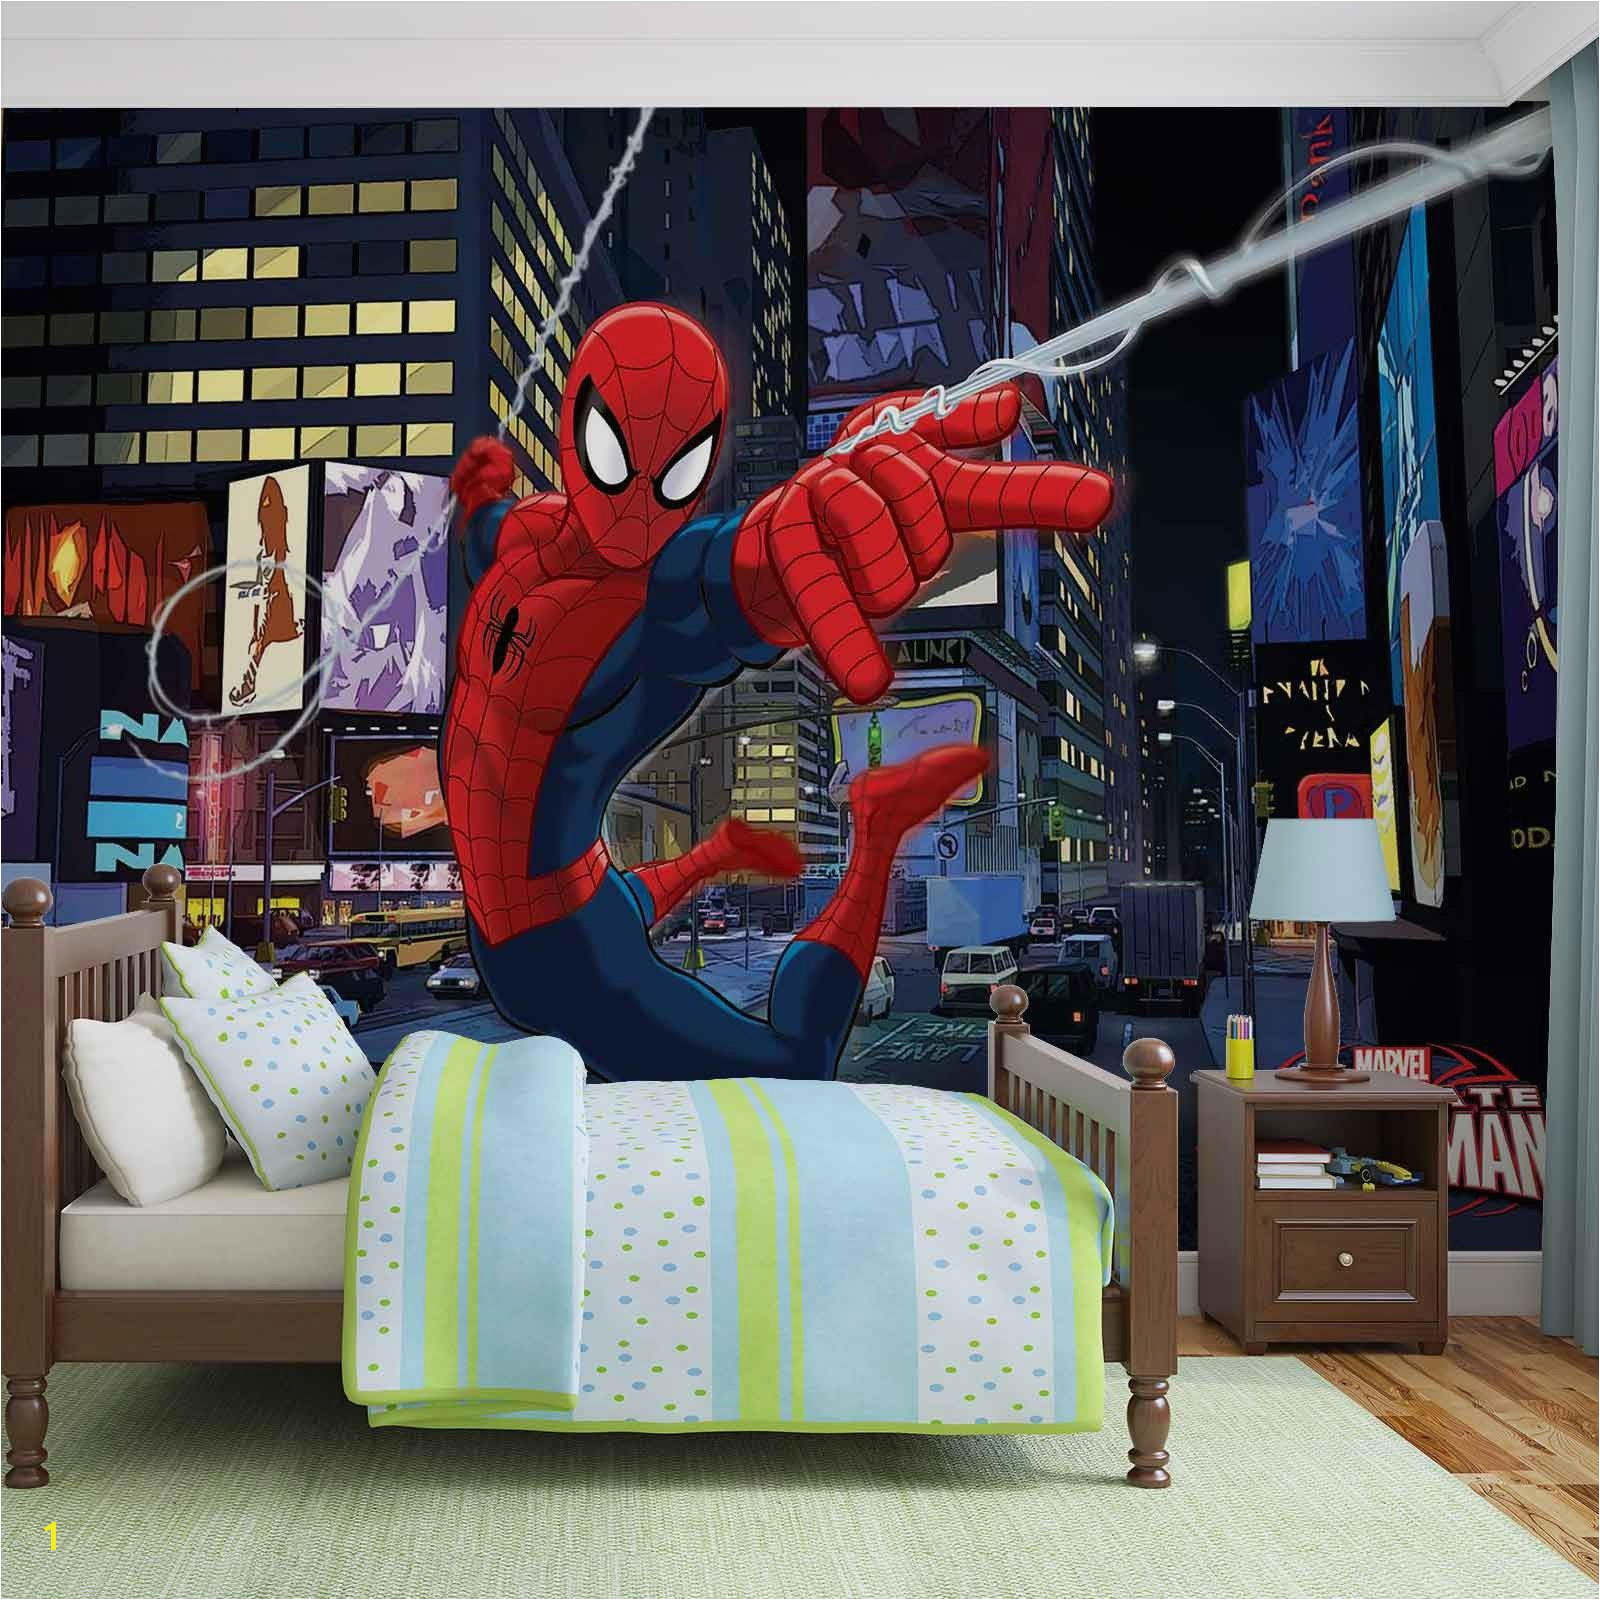 Spiderman ics hero bedroom wallpaper